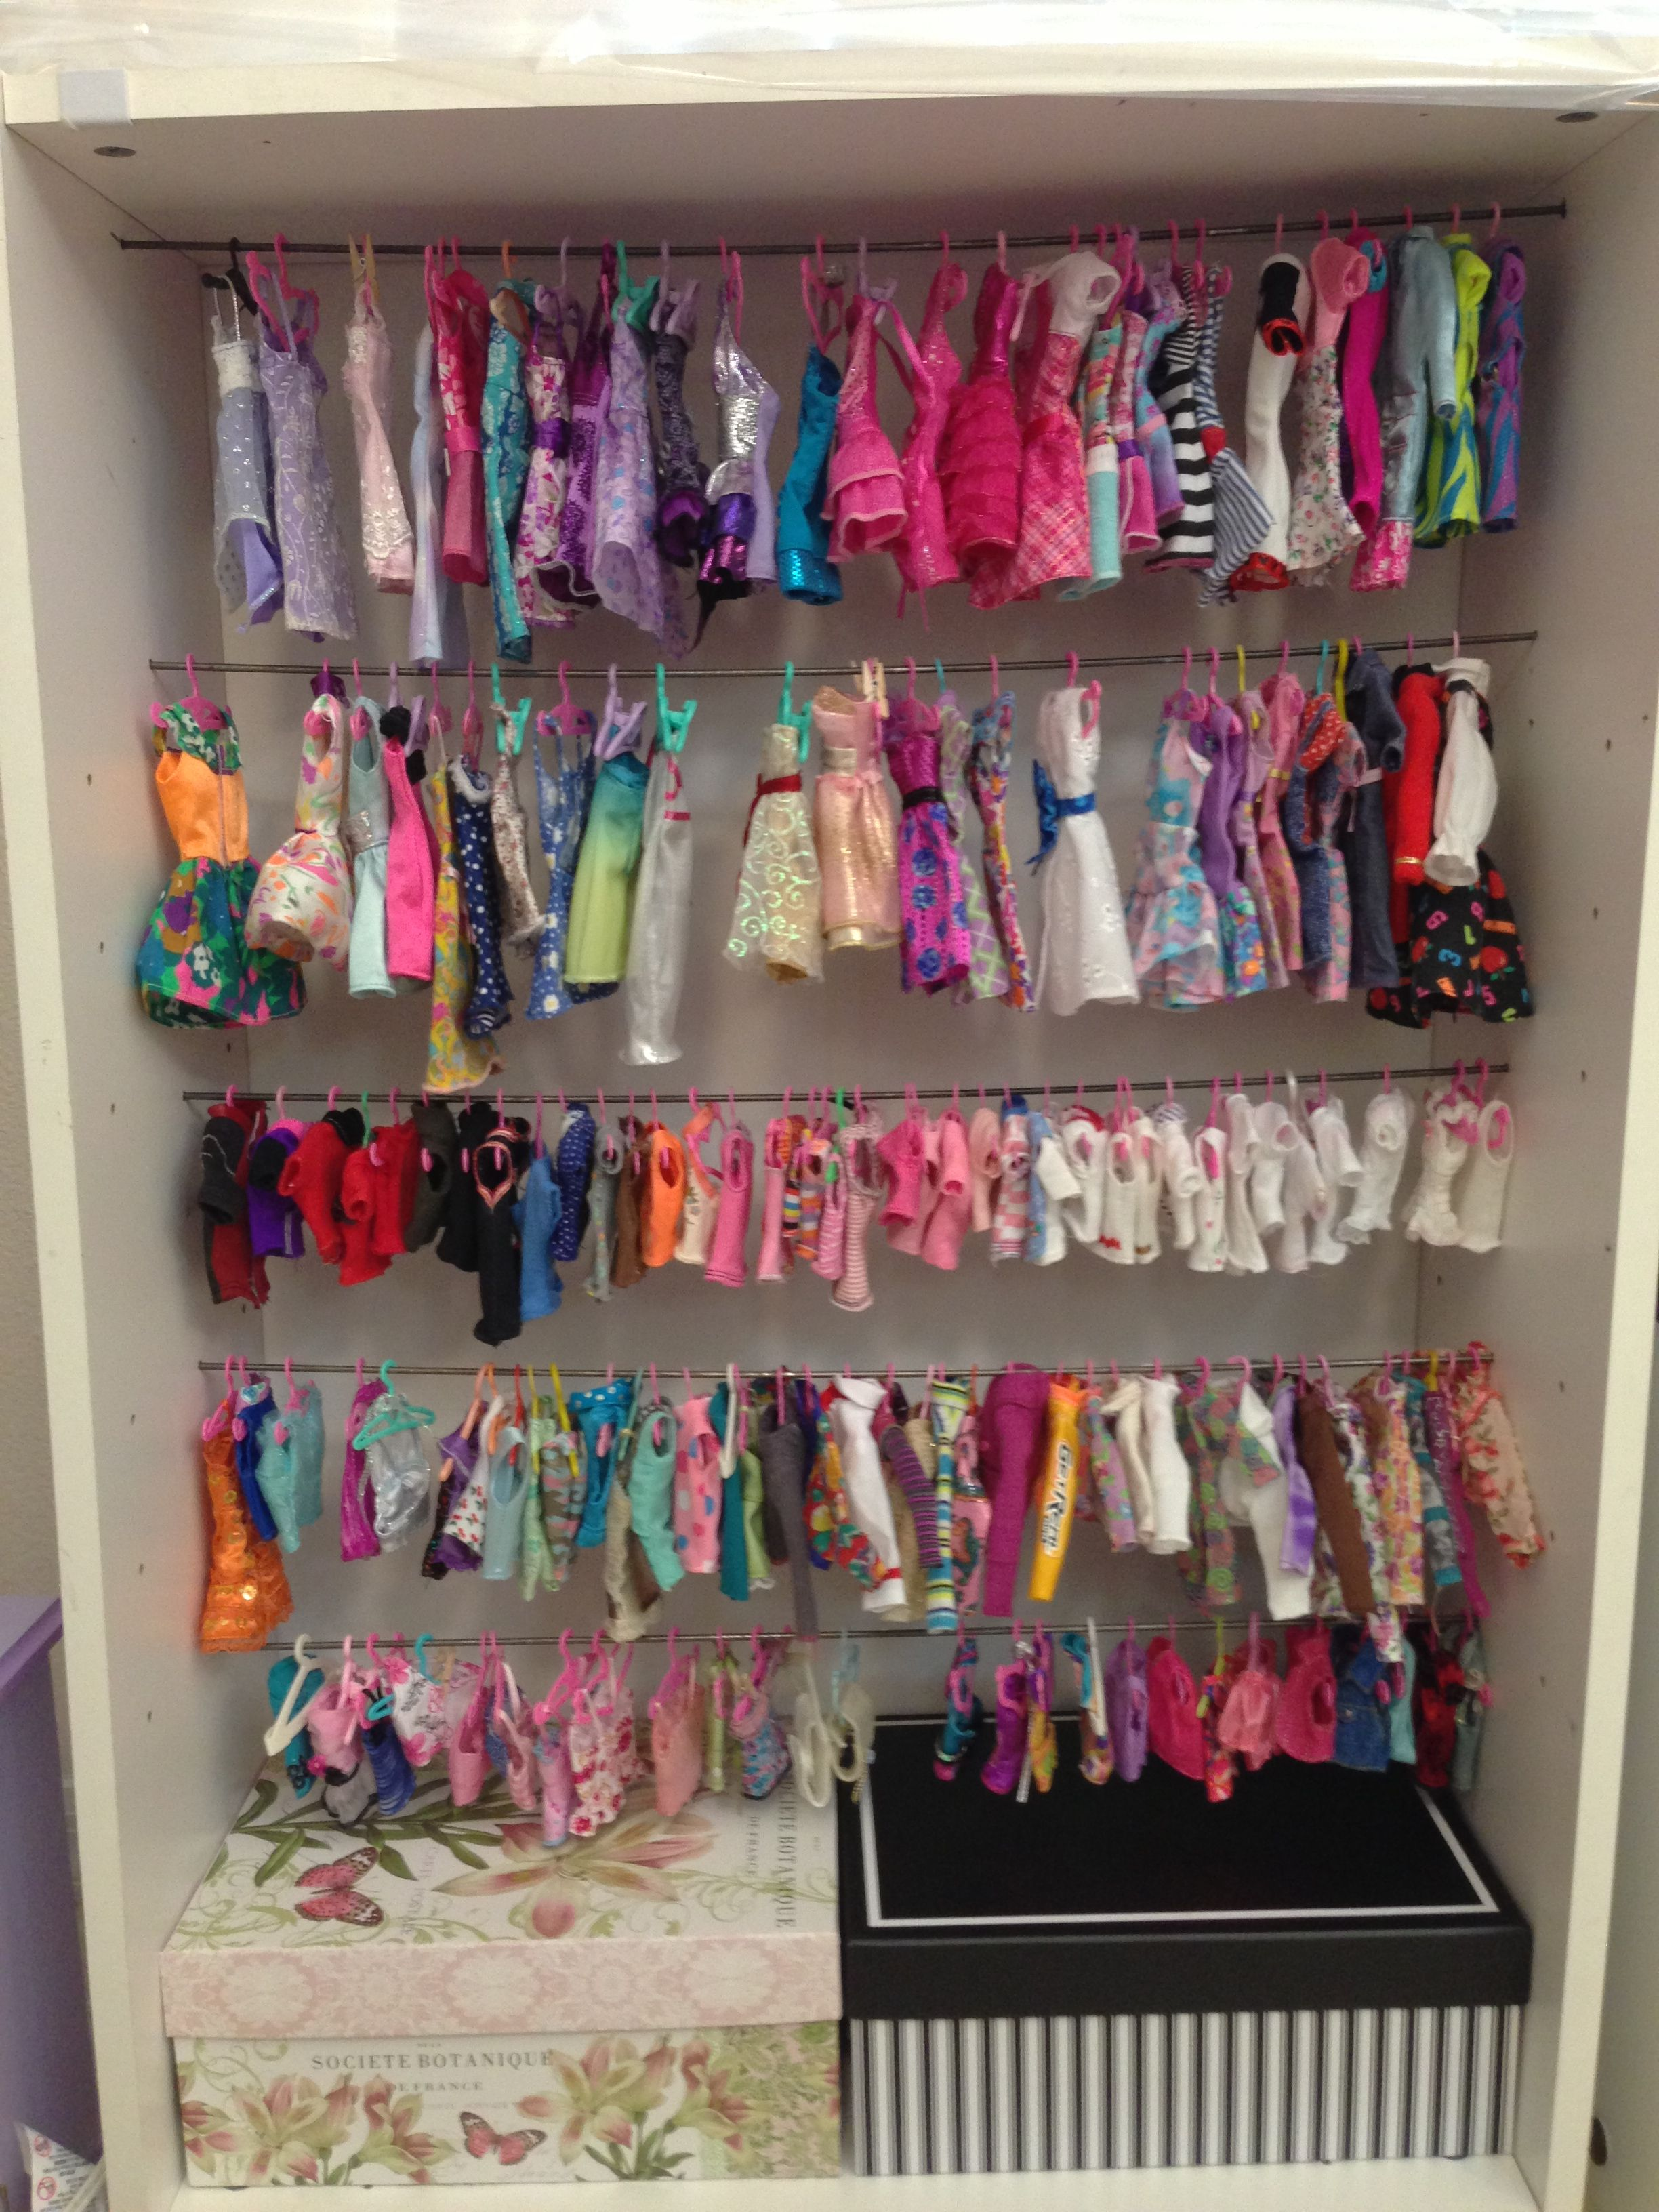 Pin By Lindsay Wilkinson On Barbie Project Doll Clothes Storage Ideas Doll Storage Barbie Storage